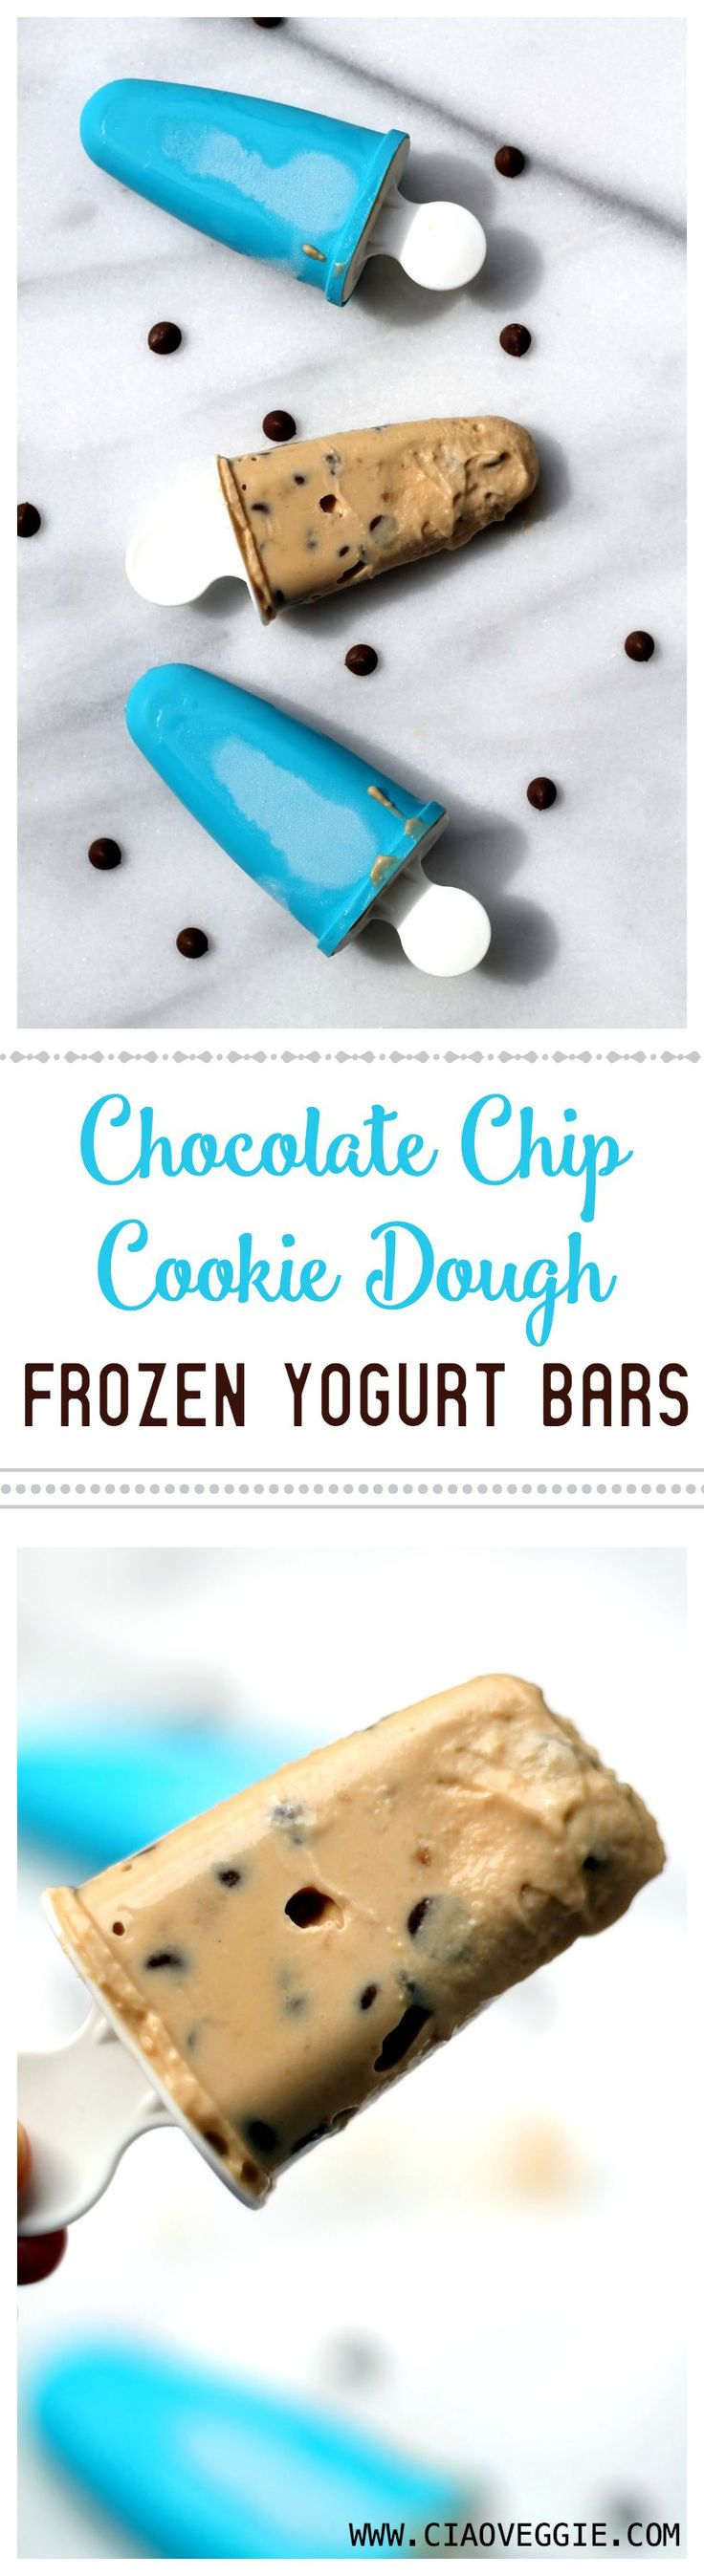 Naughty but worth it! These cookie dough frozen yogurt bars are easy to put together from a one-bowl mix which goes straight into the popsicle molds. You will love them!